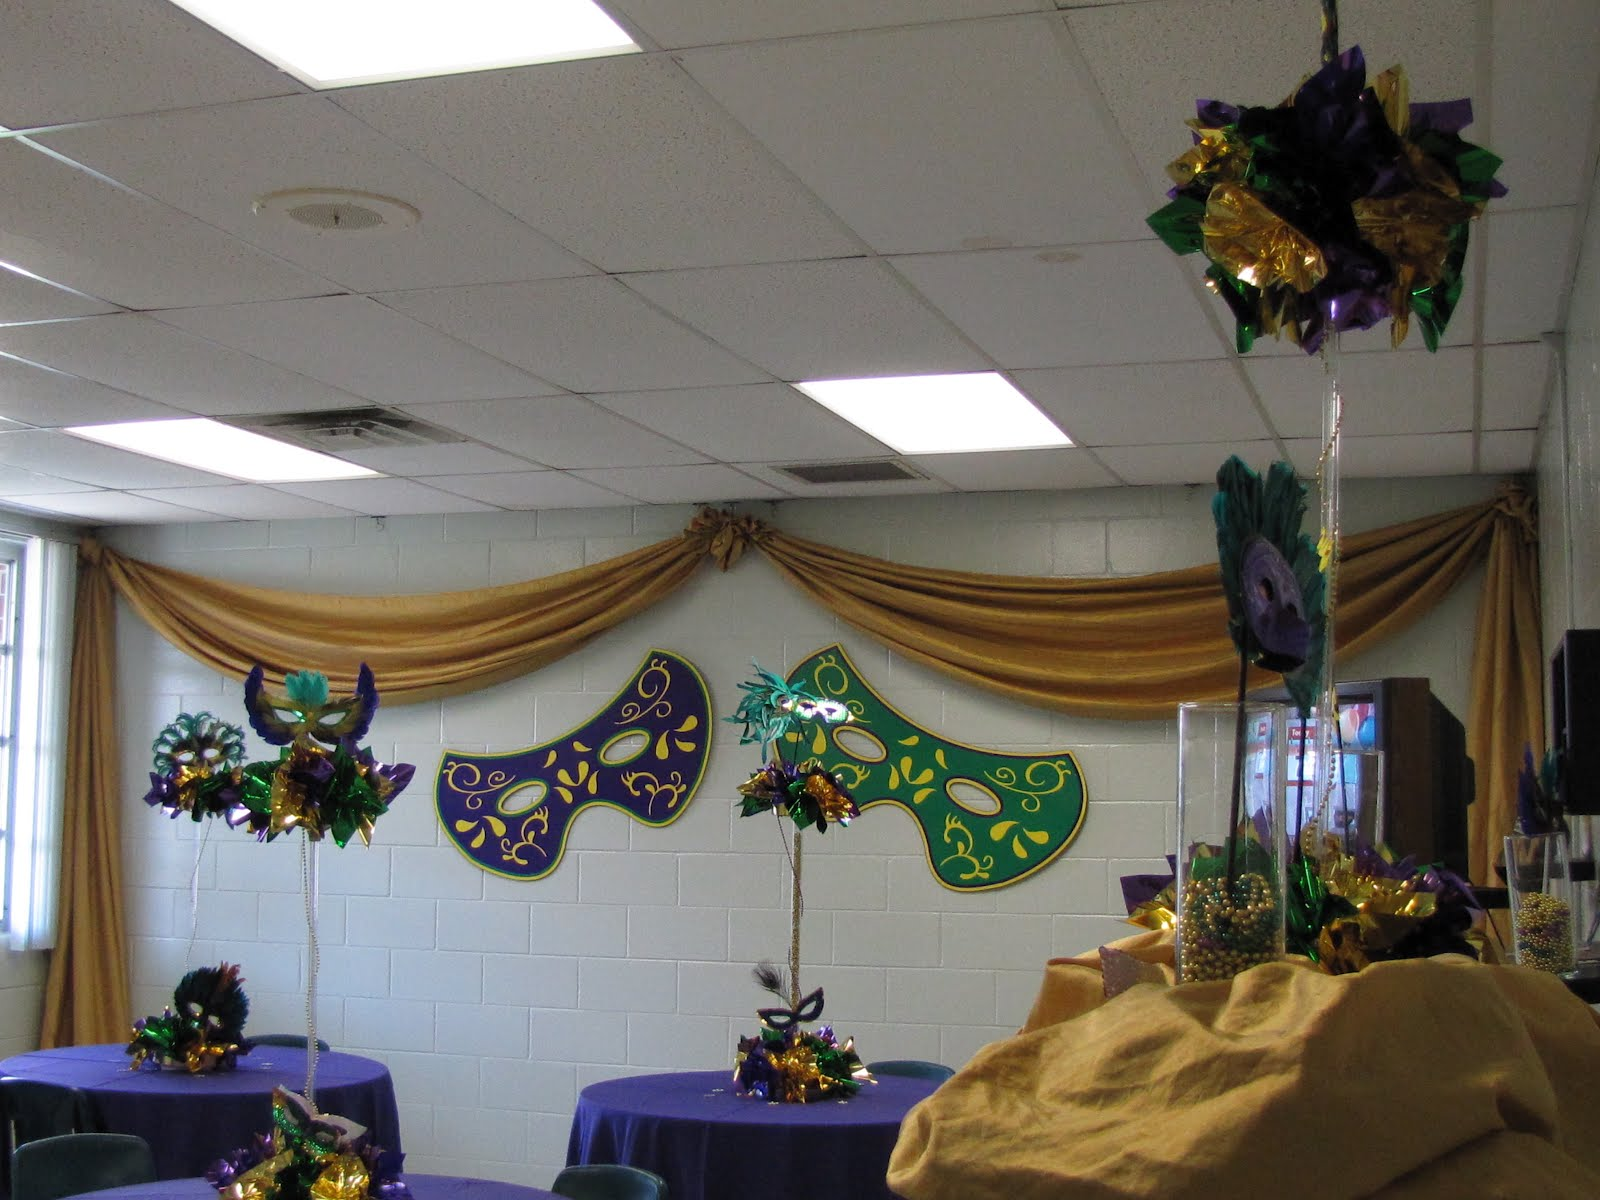 Party people event decorating company teacher appreciation monday may 14 2012 amipublicfo Images